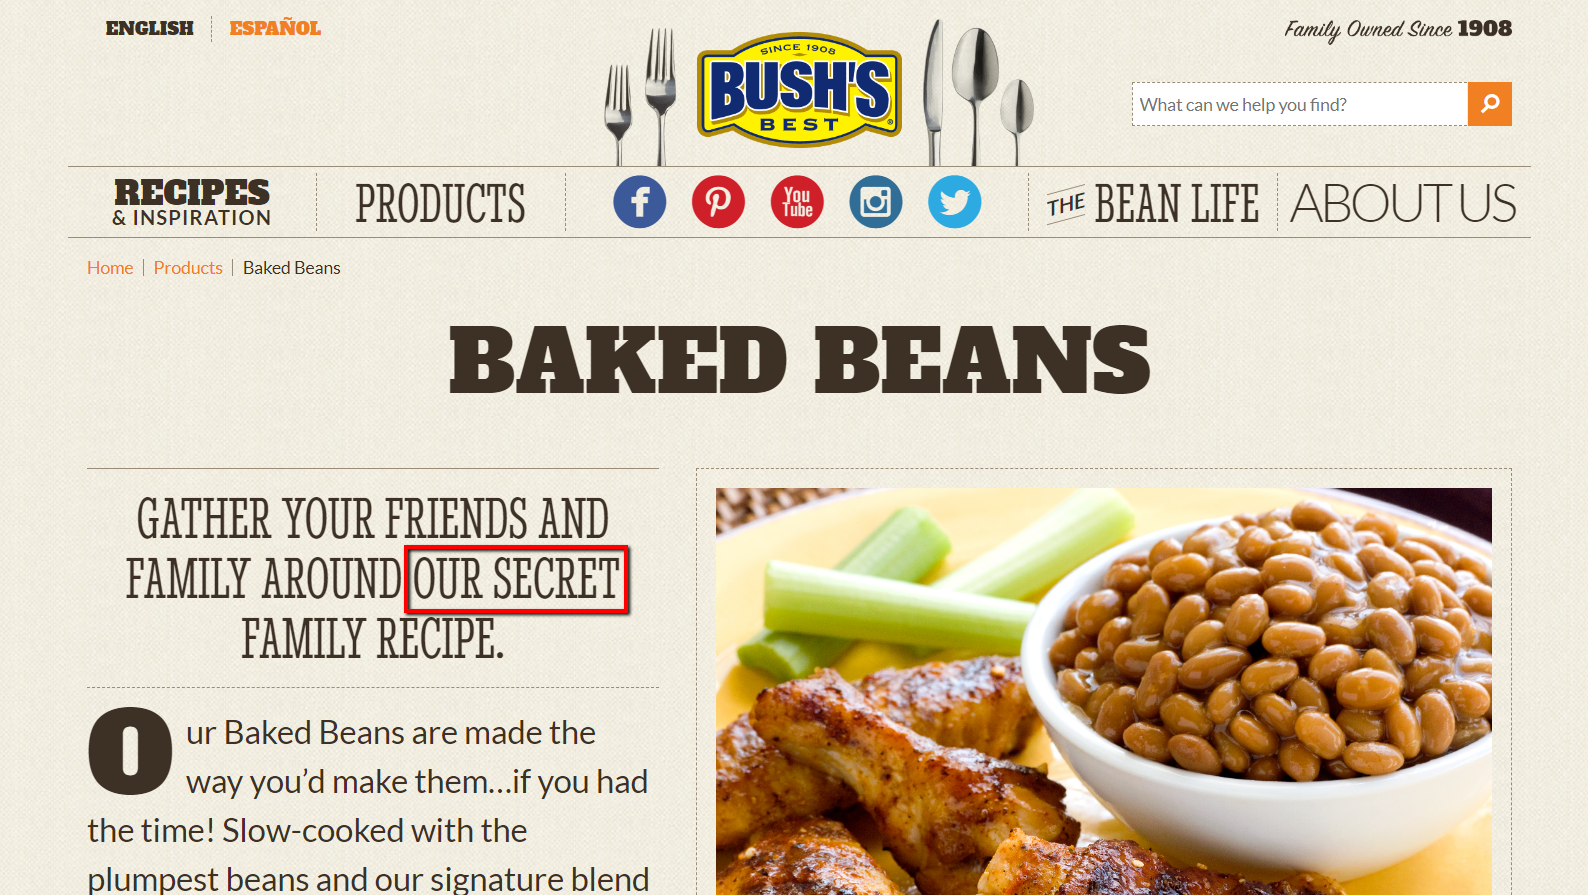 bush's baked beans promoting their secret recipe on their homepage.